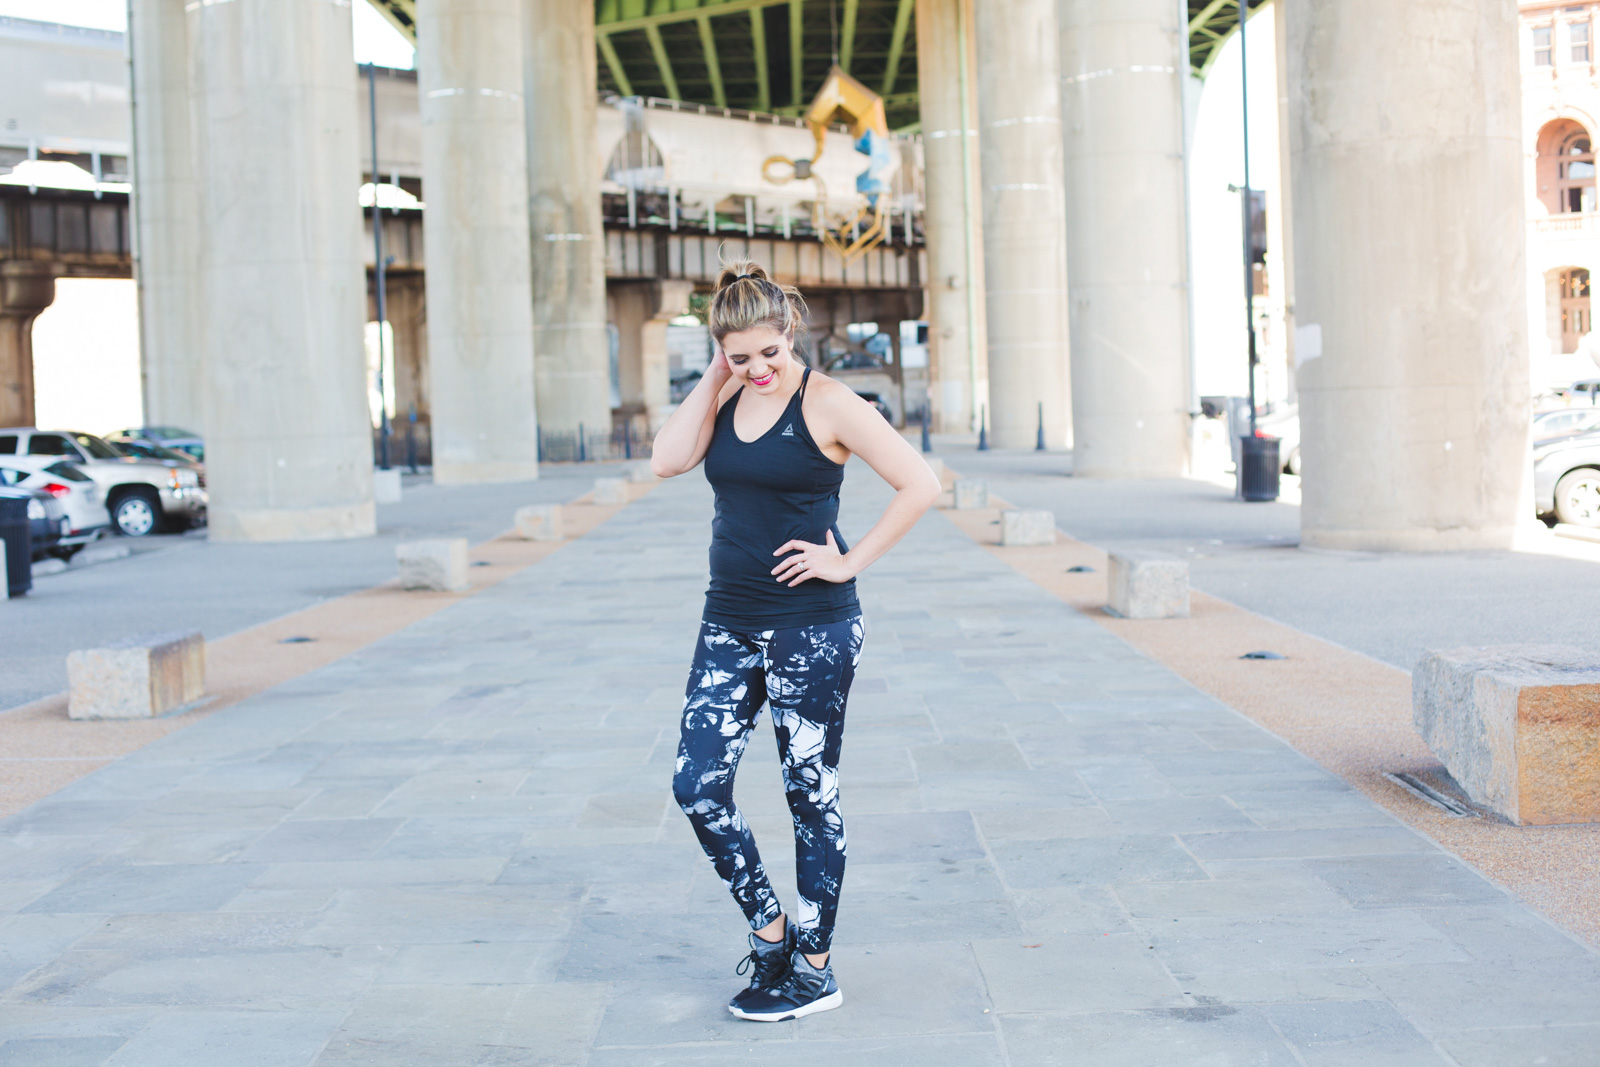 comfy workout clothes - comfortable workout leggings. I've been loving these super-soft printed leggings for all my workouts! Click through for all the details! | www.bylaurenm.com